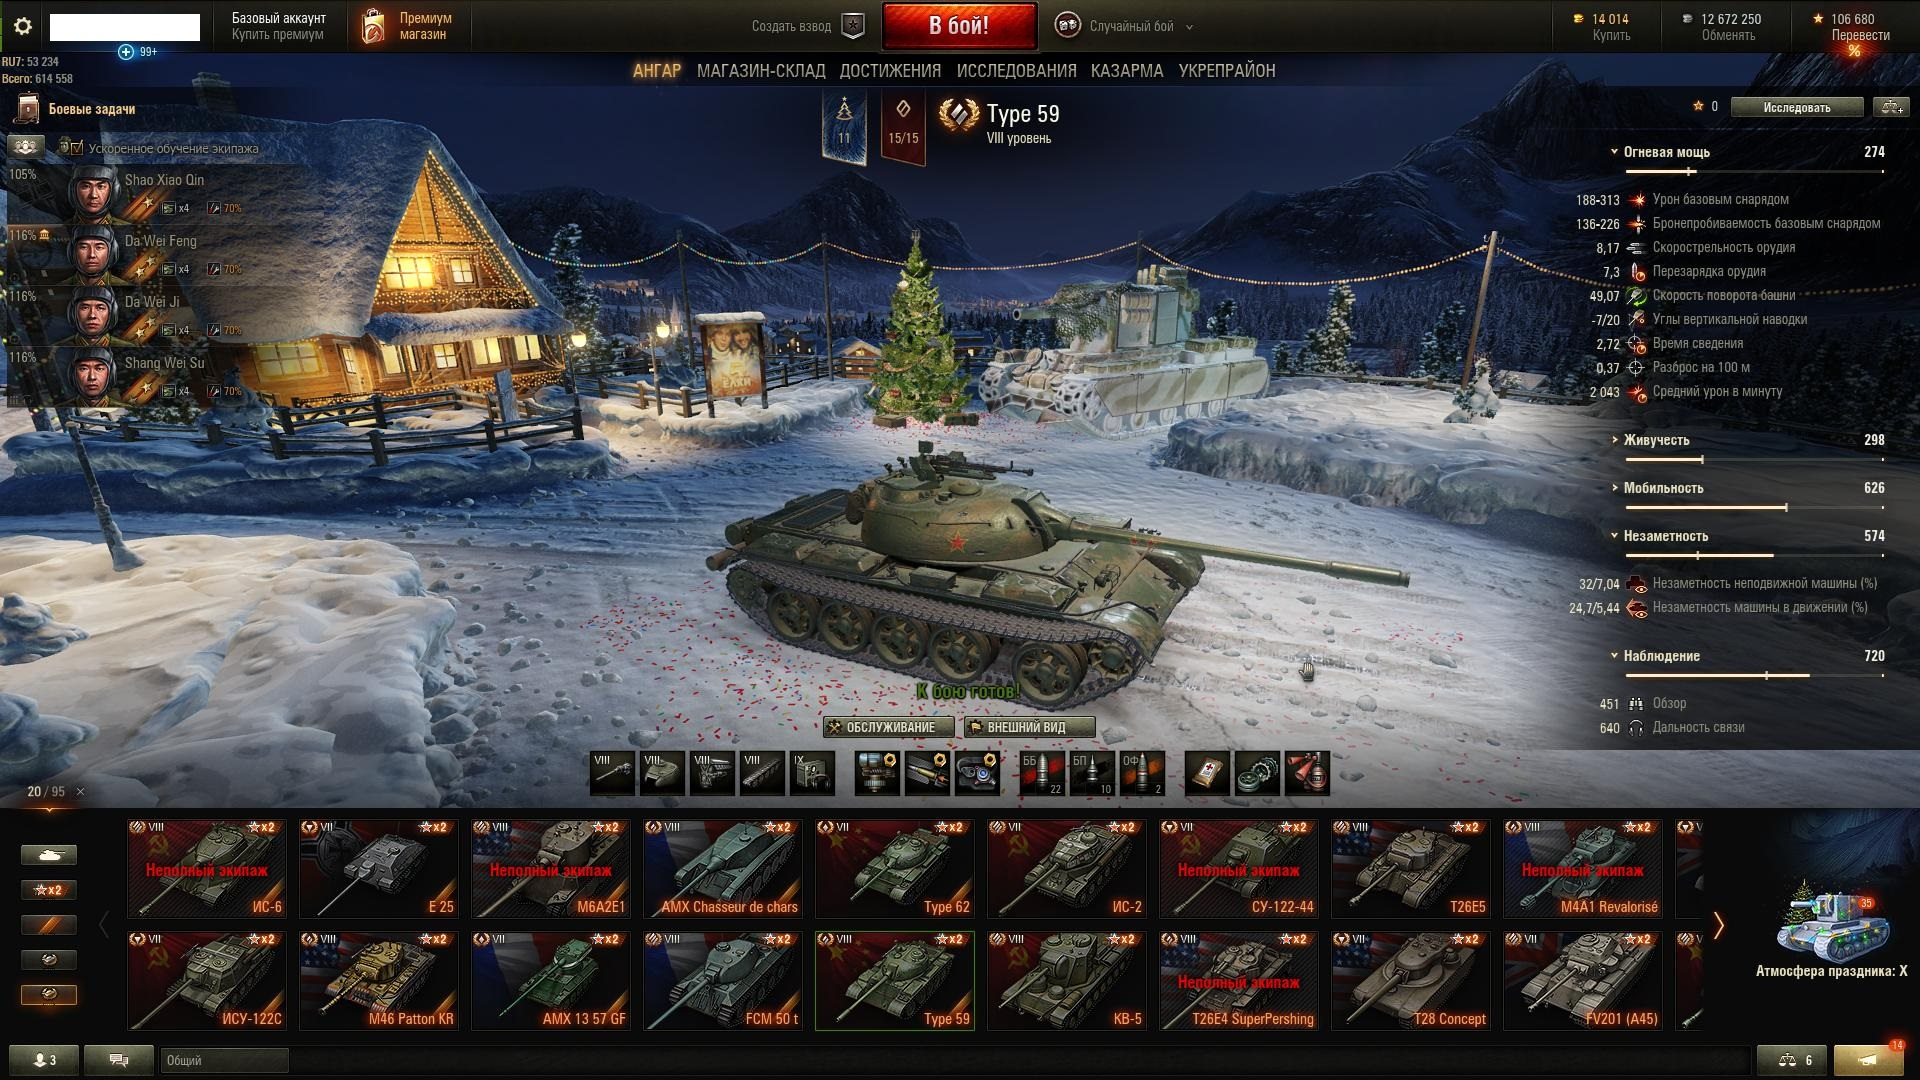 World of Tanks account rare tanks (Type 59, and other)